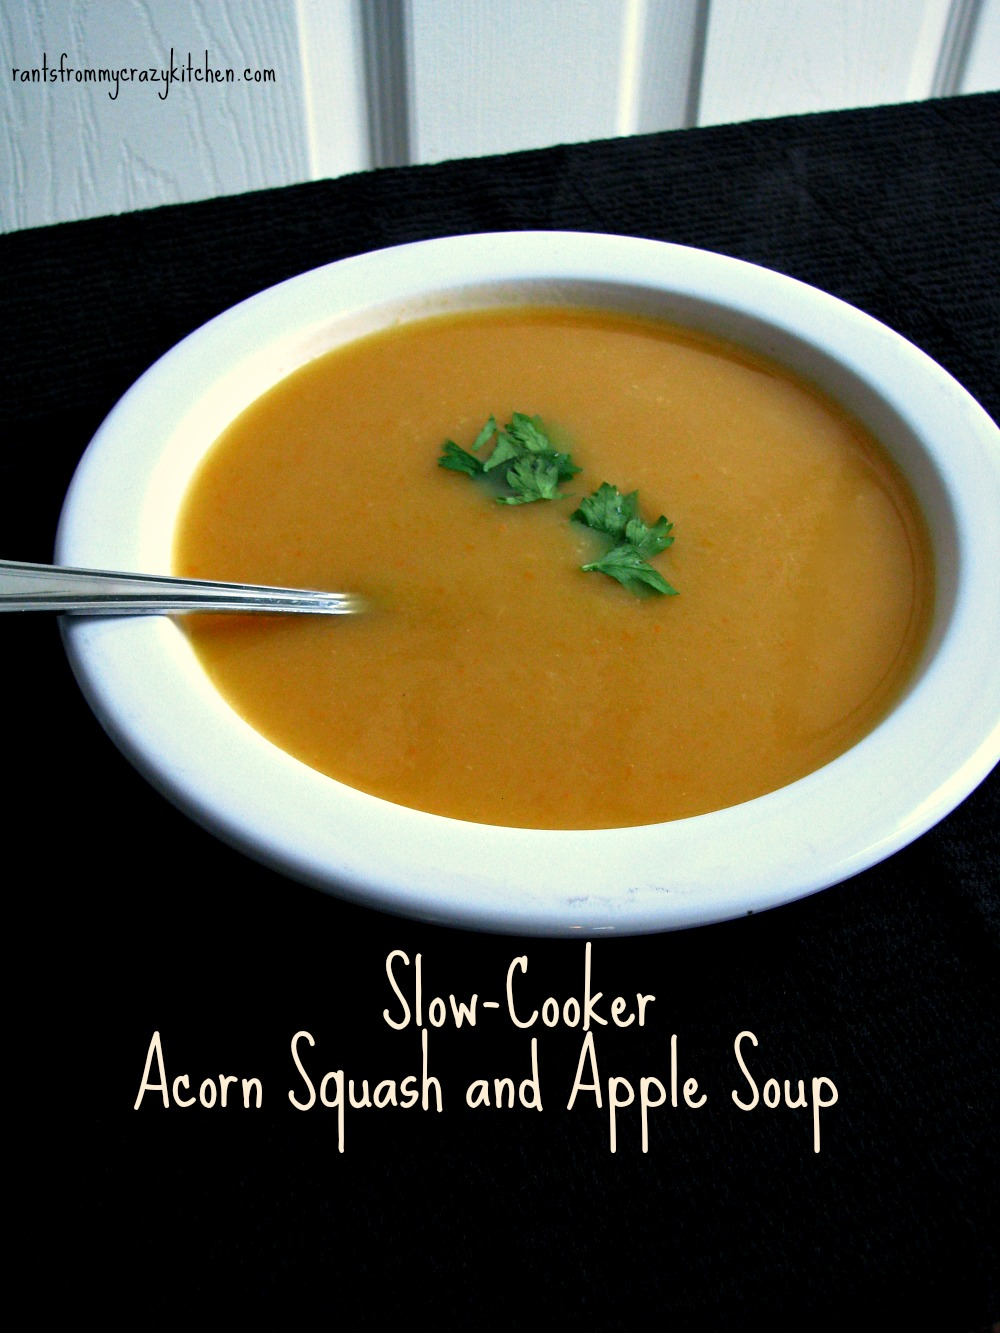 Slow-Cooker-Acorn-Squash-and-Apple-Soup